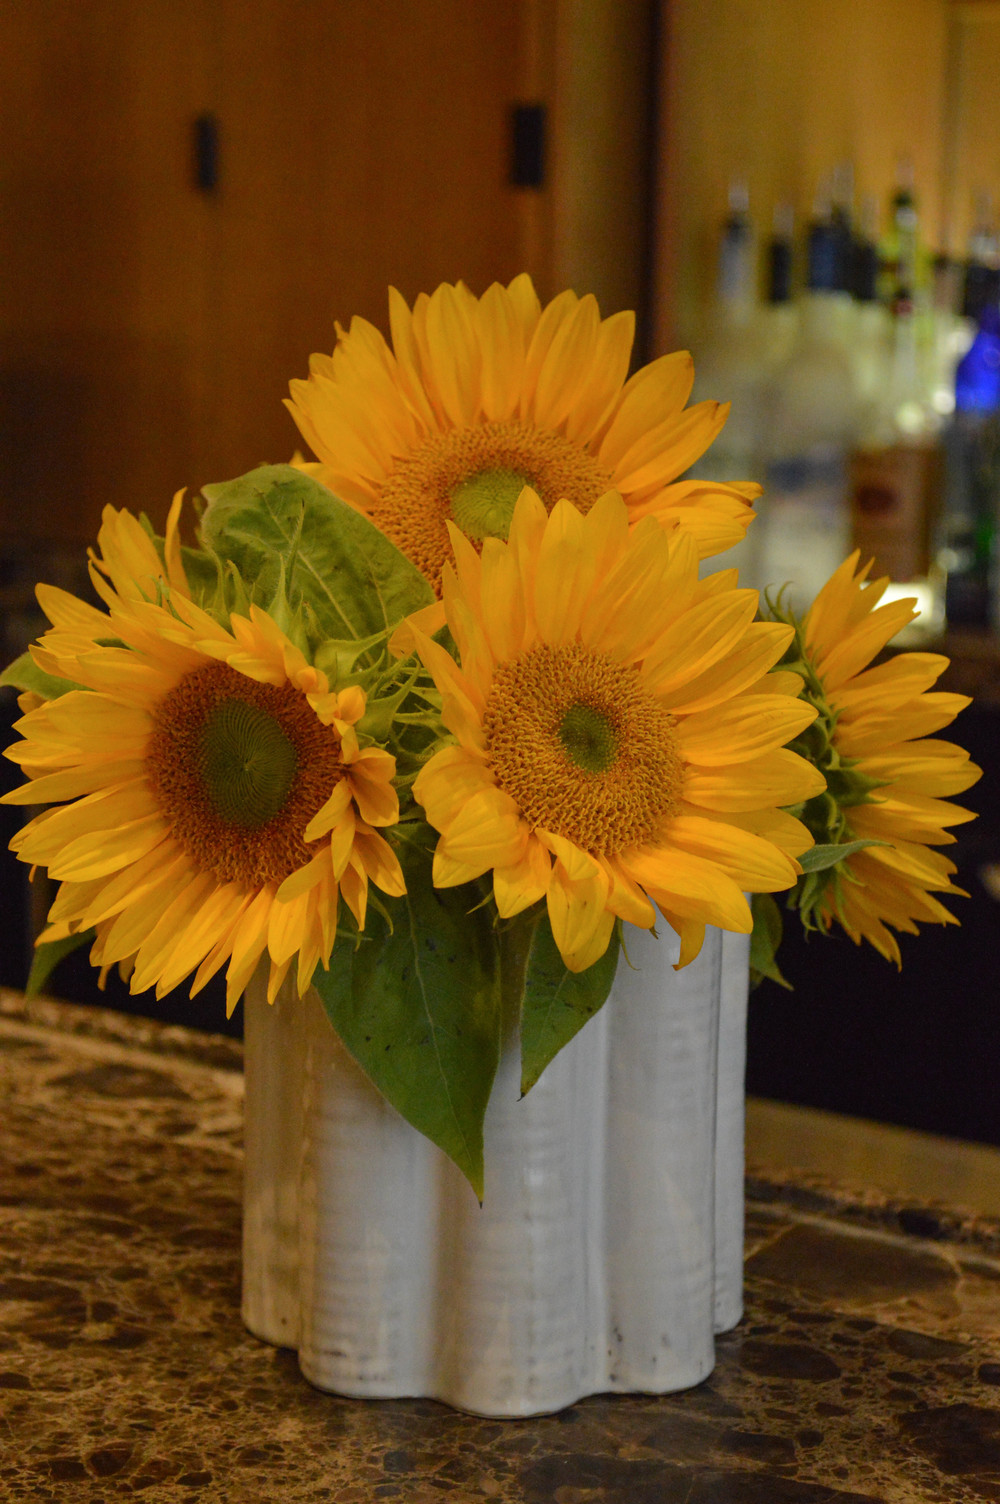 LaurenSchwaiger-Life-Style-Travel-Blog-Archer-Hotel-Sunflowers.jpg